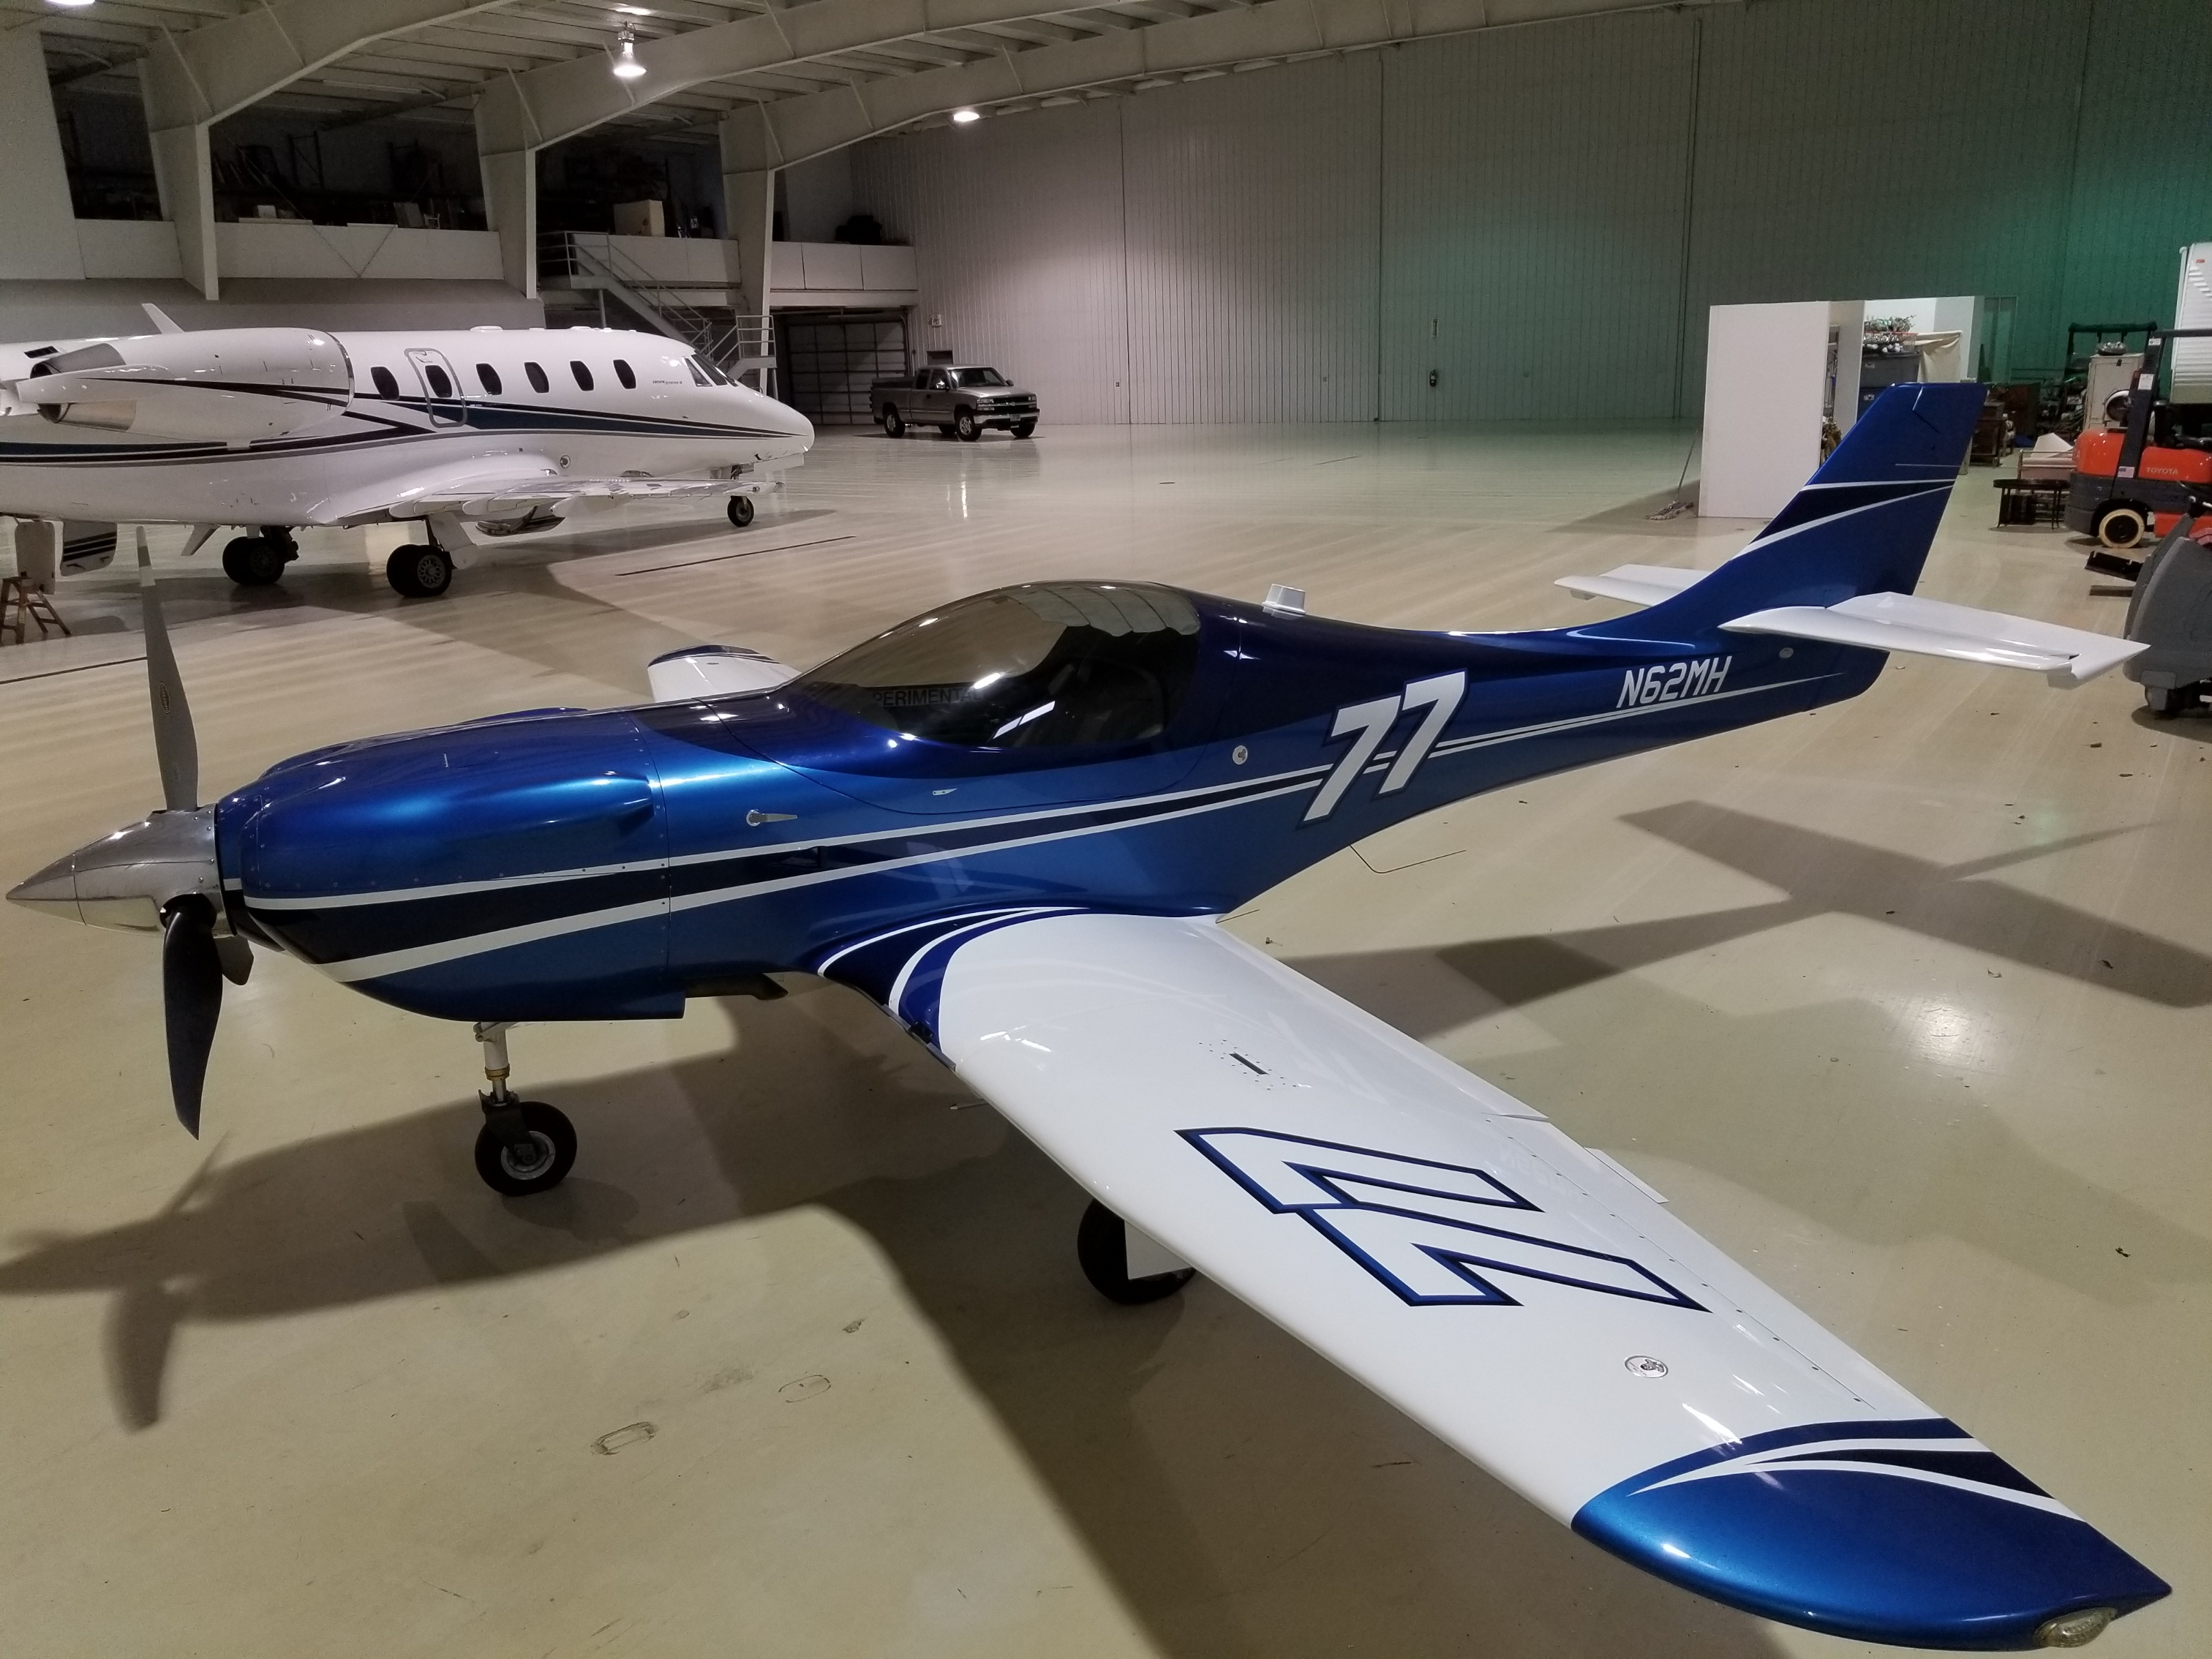 Aircraft Listing - Lancair IV-P listed for sale